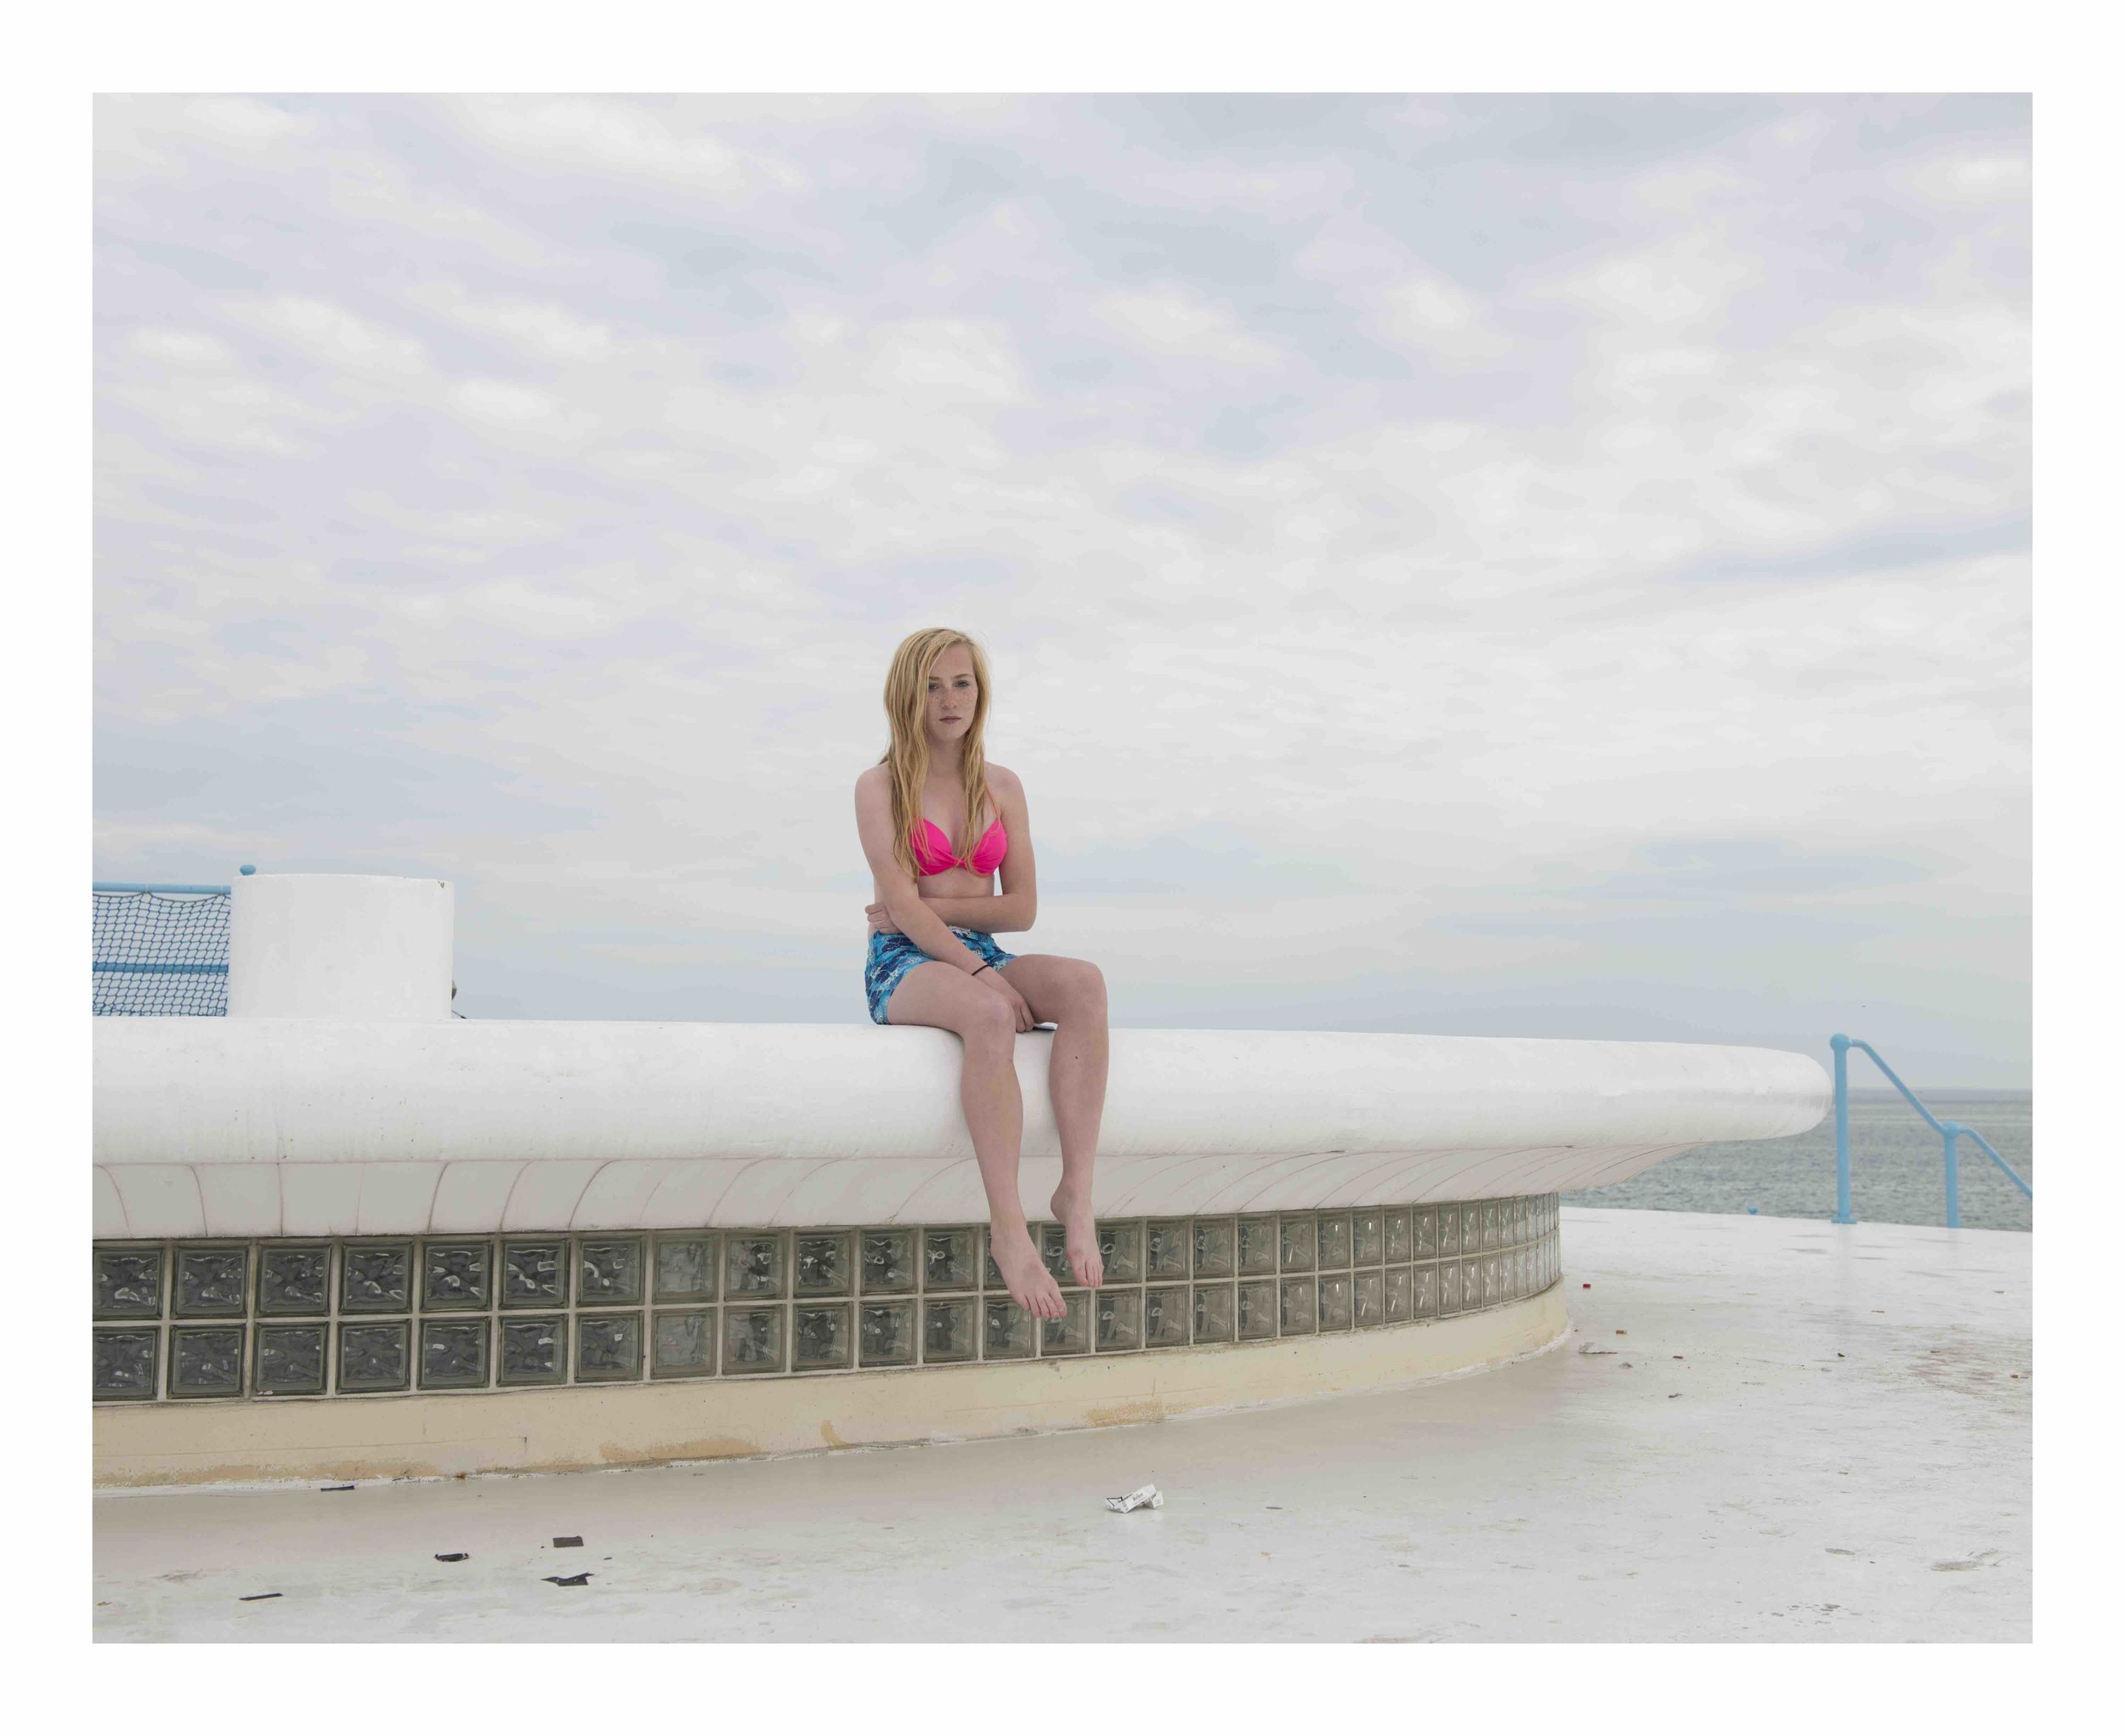 Georgia, Havre des Pas Swimming Pool, St Clement, Jersey, c.2013 from the 'Insula' series